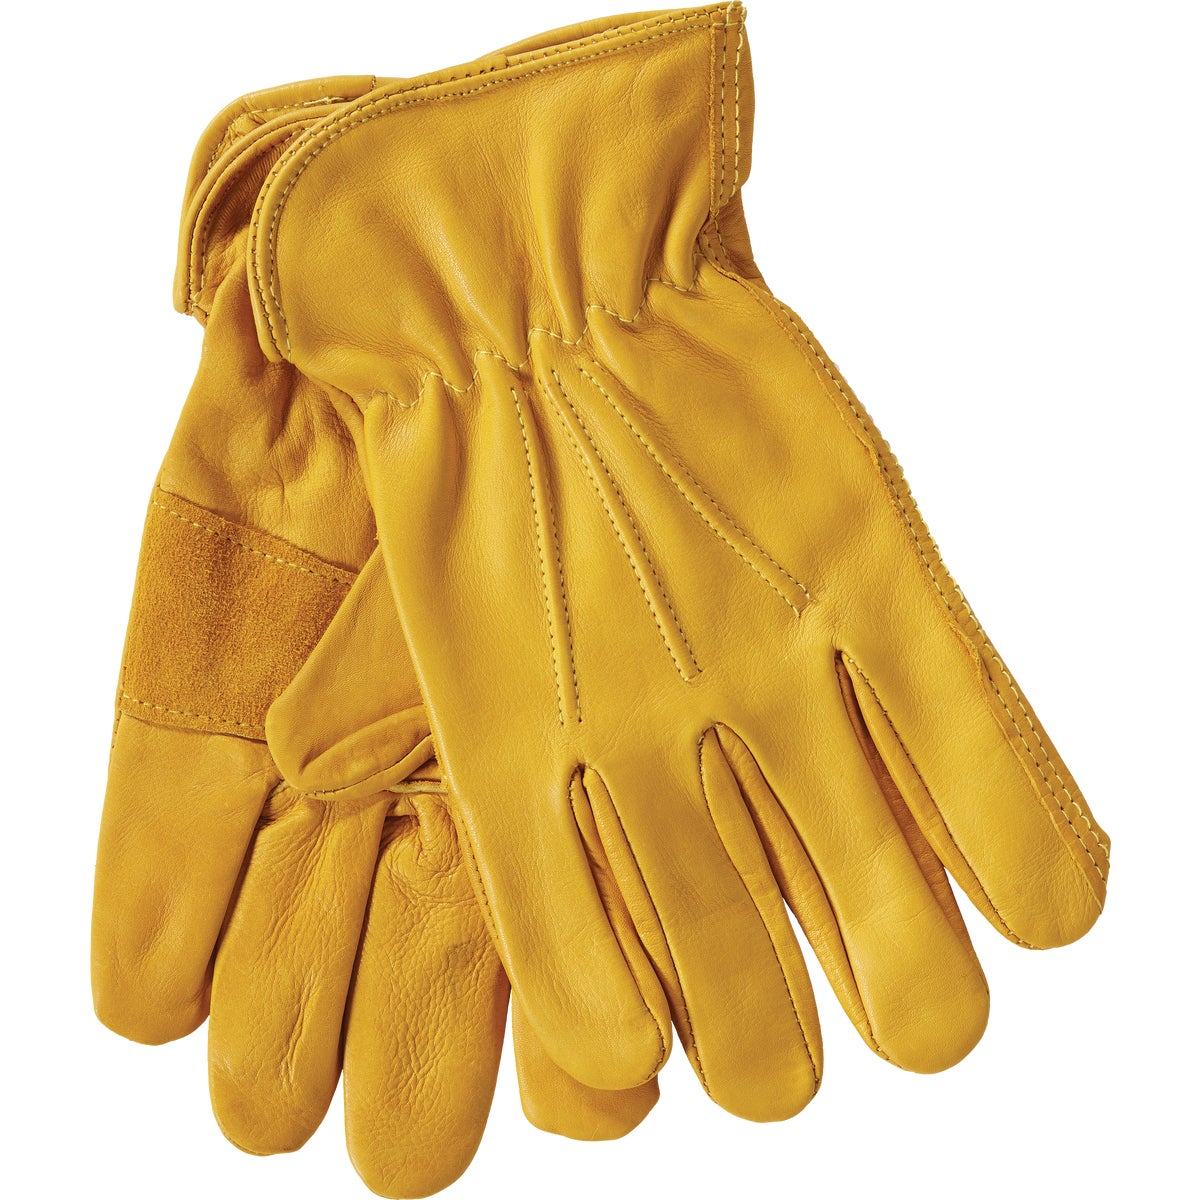 XL GRAIN LEATHER GLOVE - 1130XL by Wells Lamont